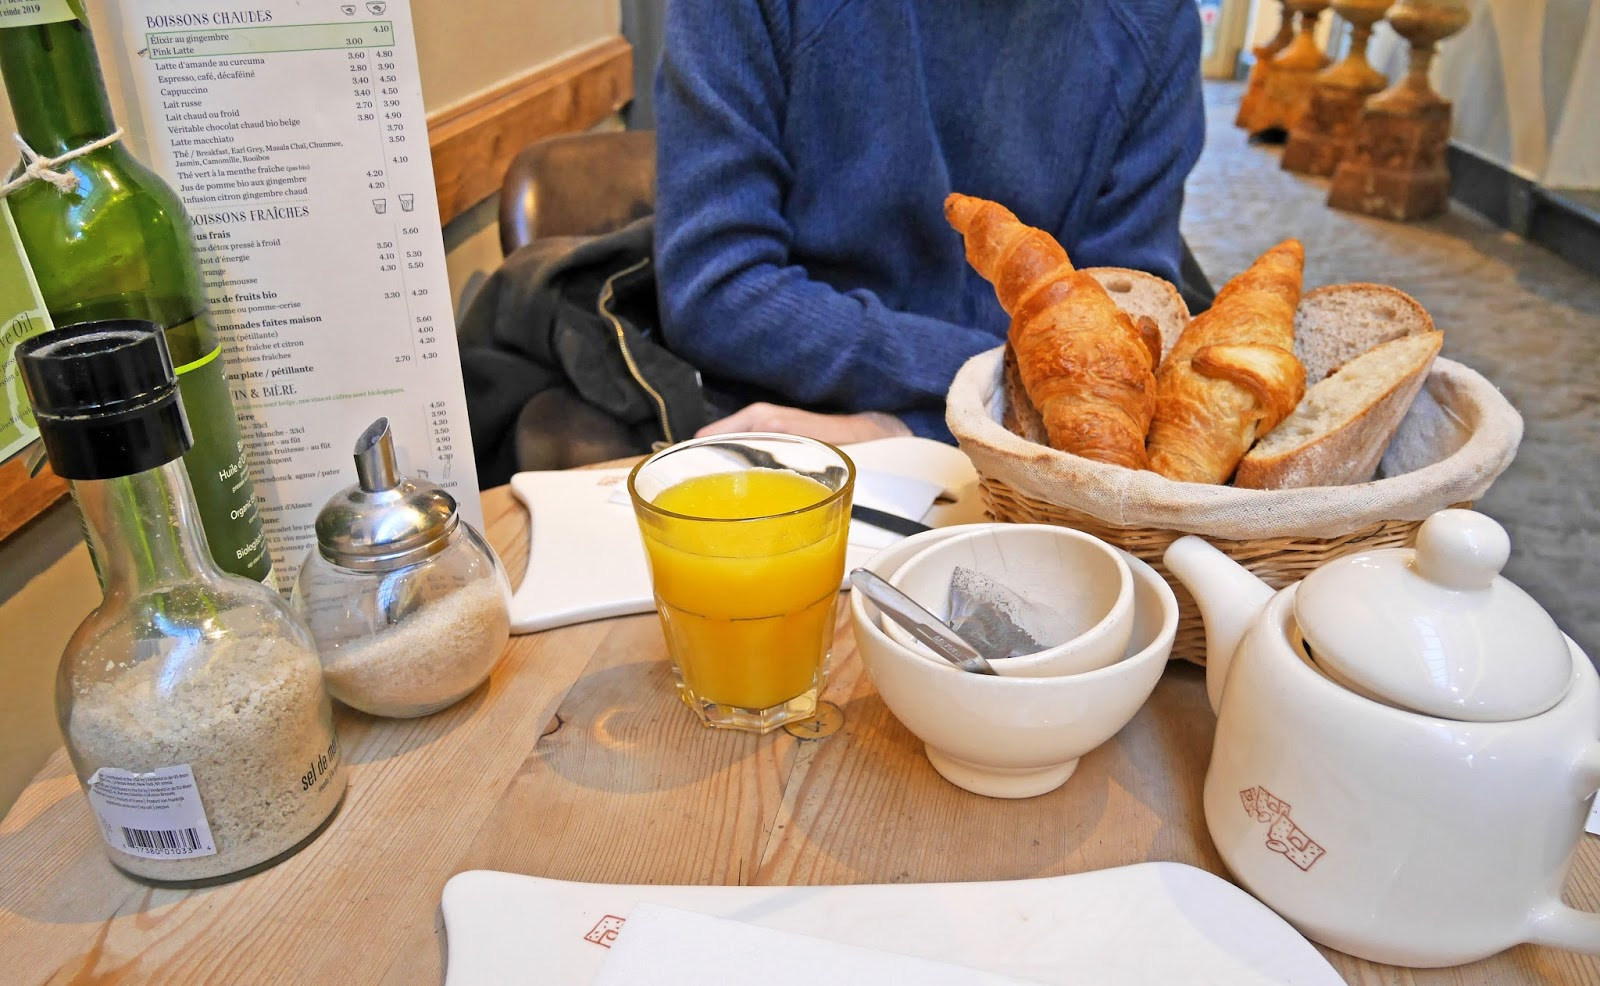 Pastries for breakfast at Le Pain Quotidien, Bruges